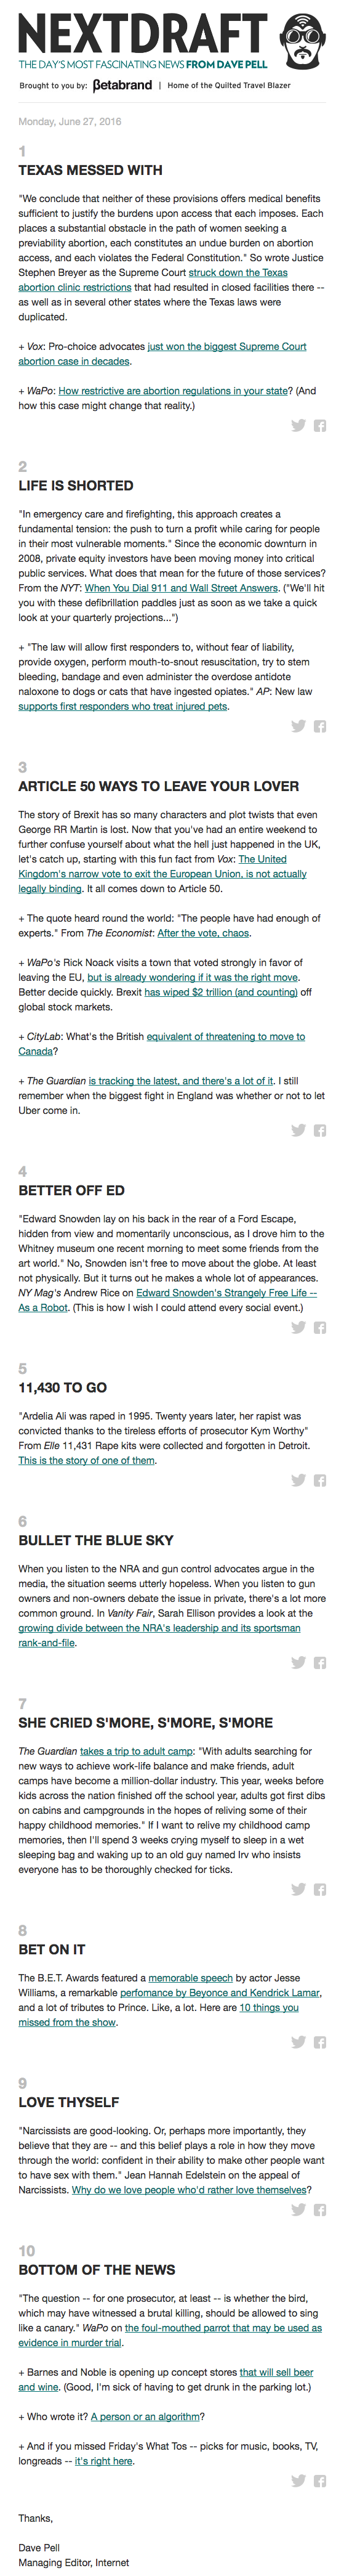 Email newsletter example design for news copy by NextDraft